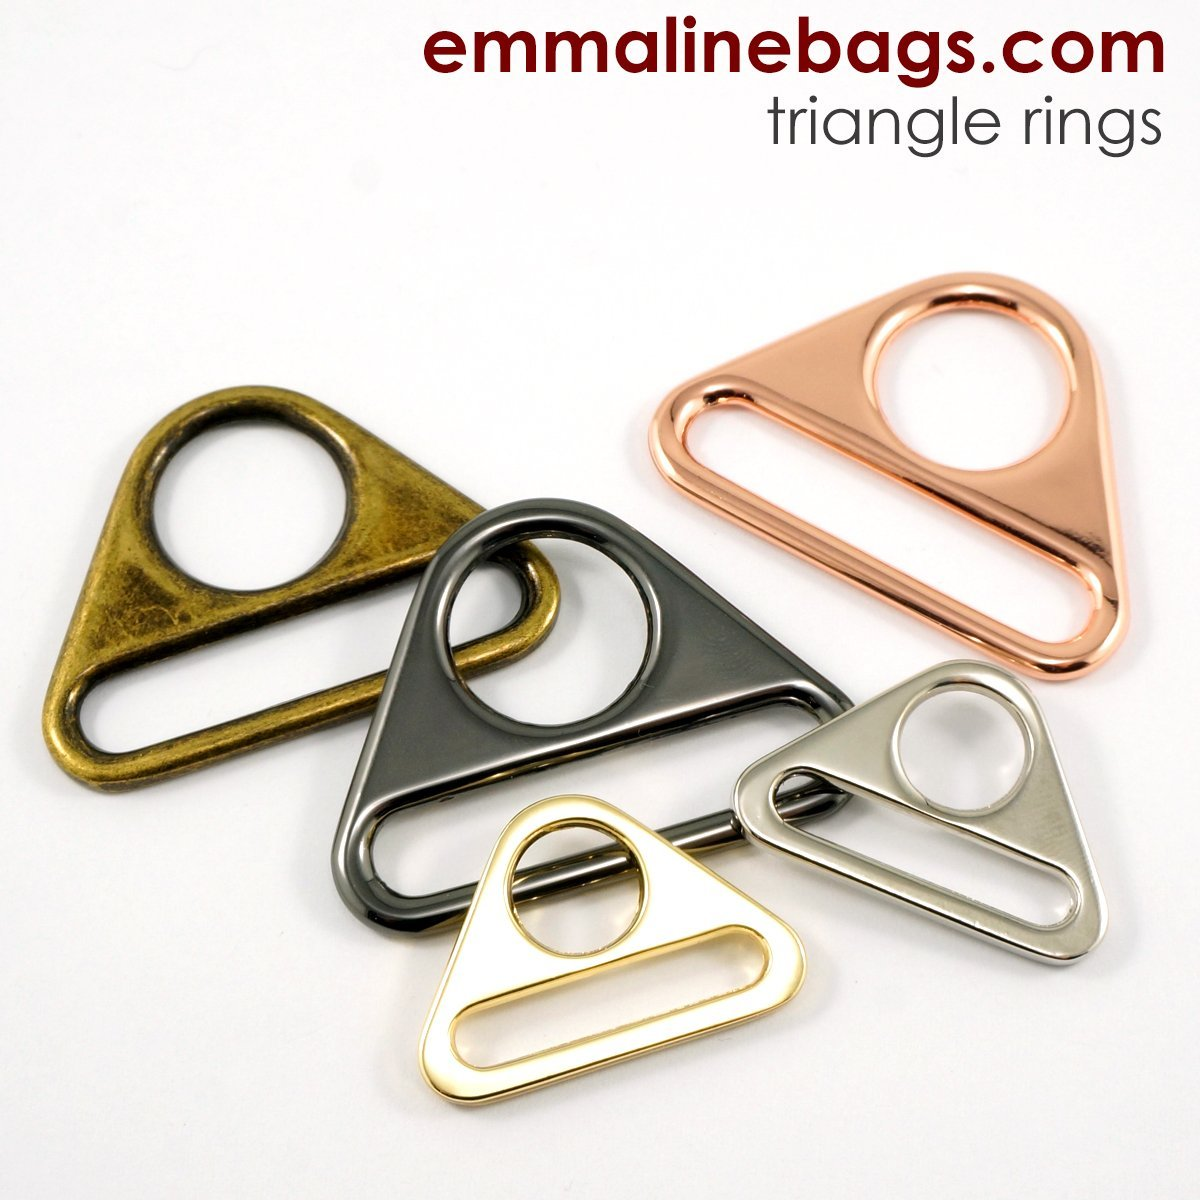 Triangle Rings: 1 (25mm) 2 pack - Nickel